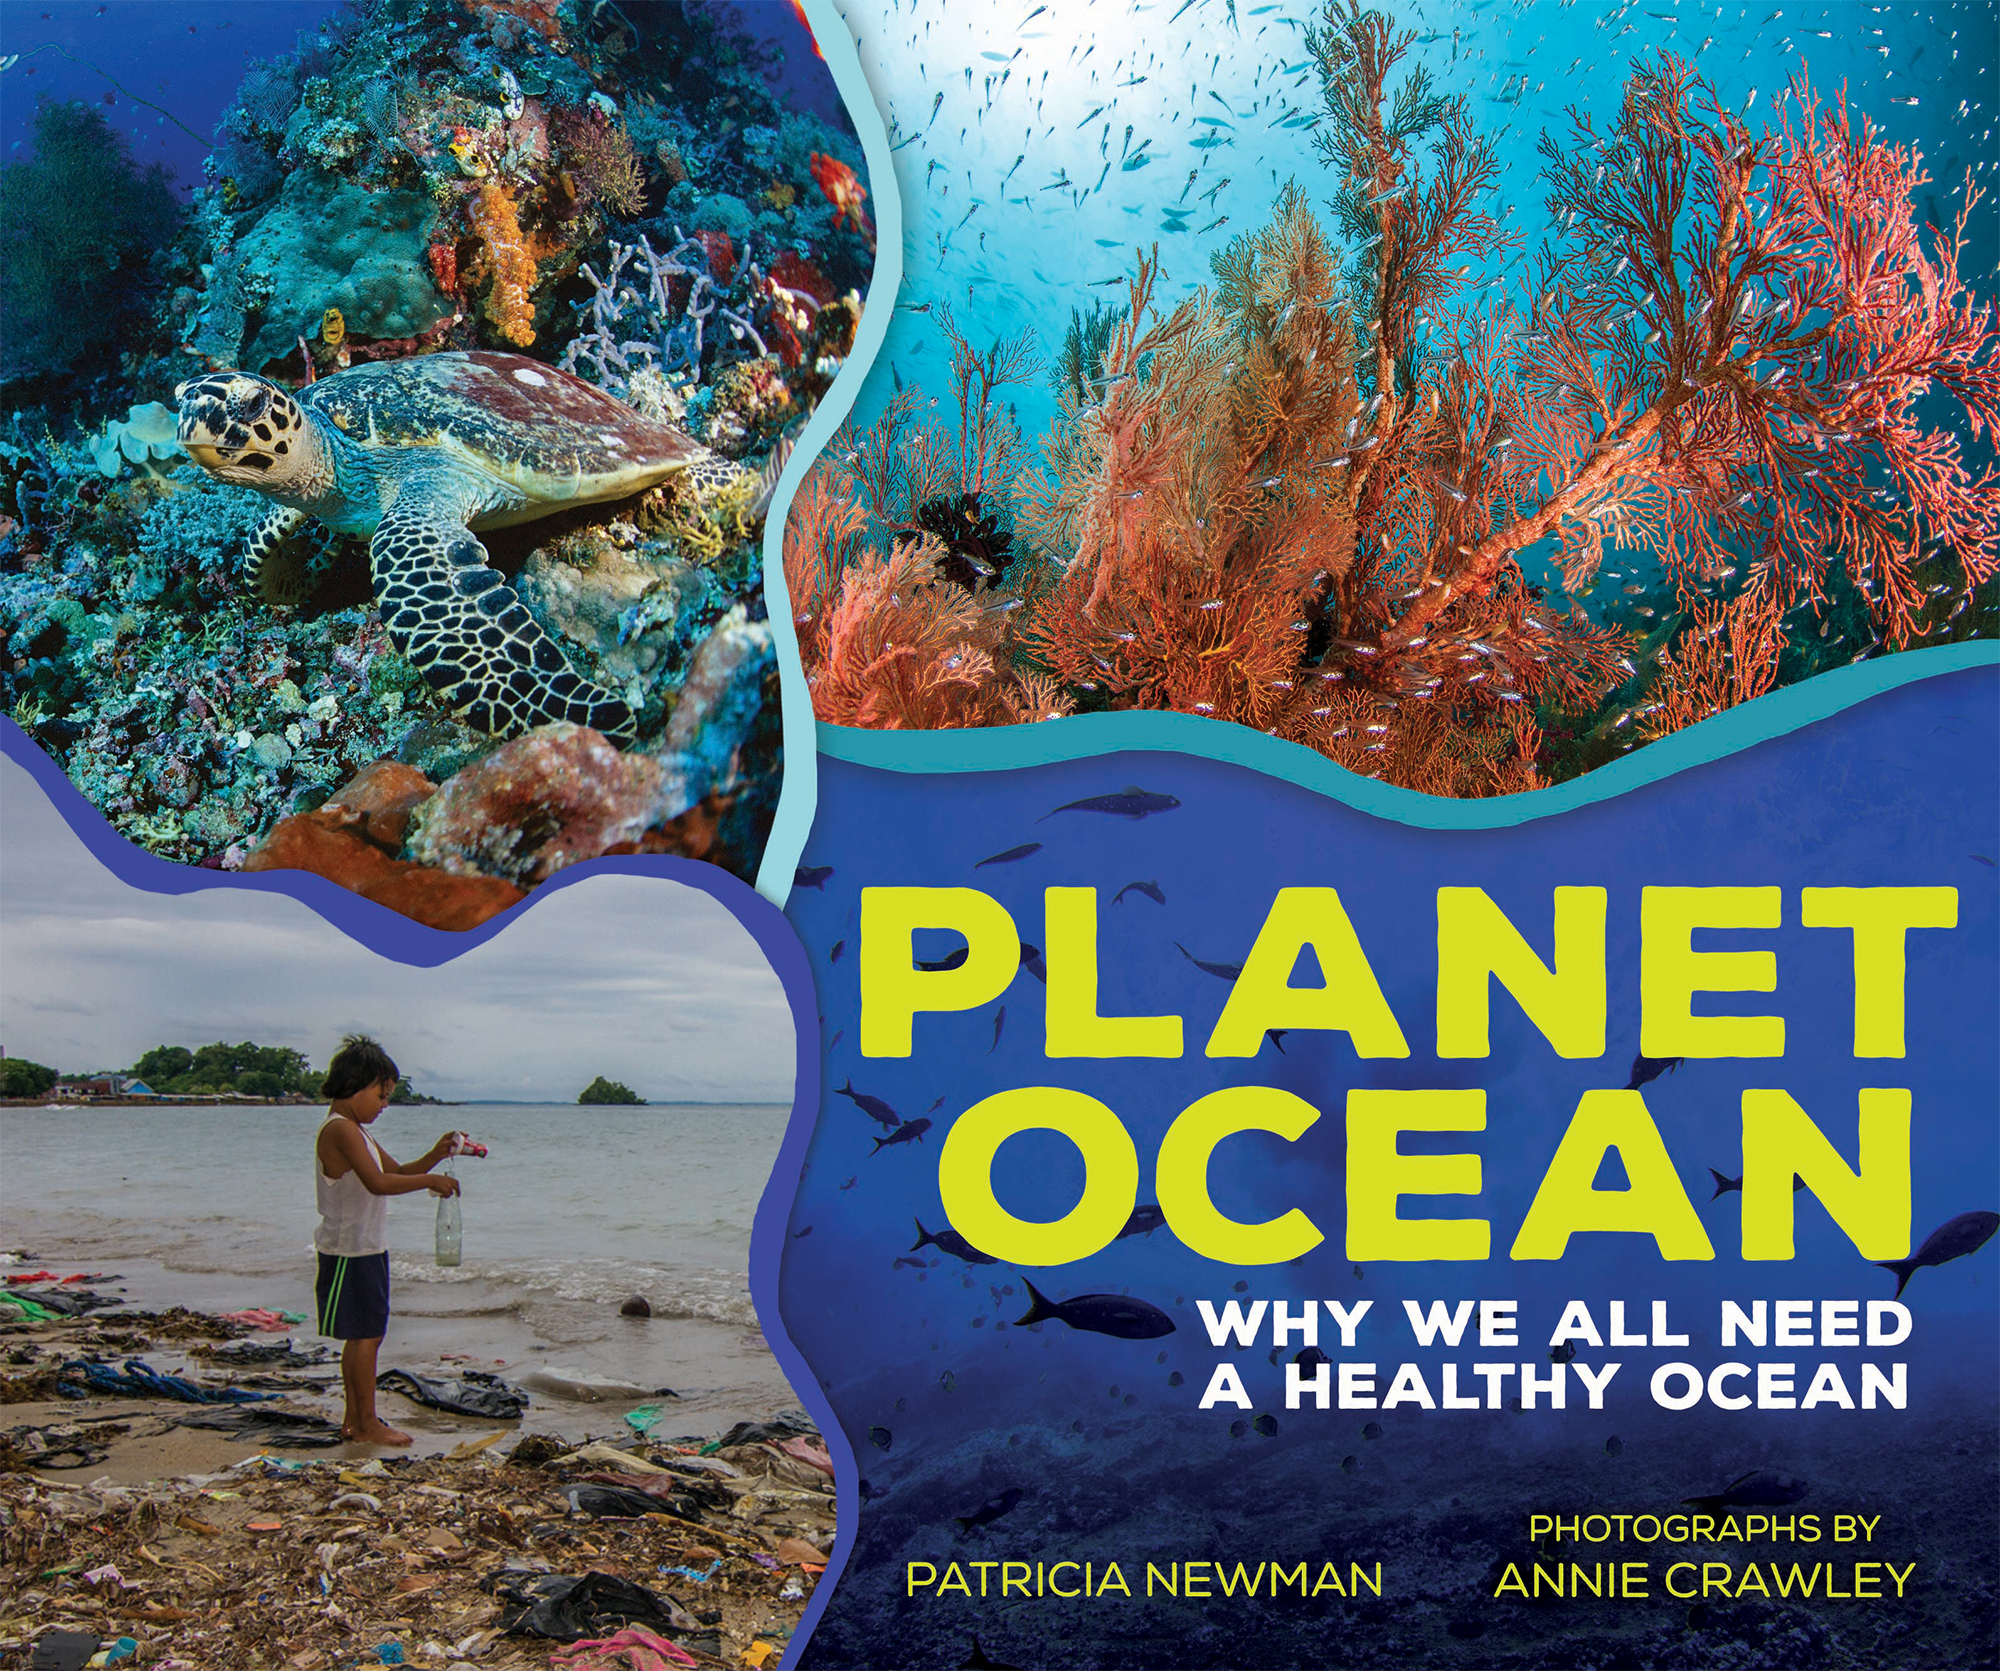 Planet Ocean: Why We All Need A Healthy Ocean